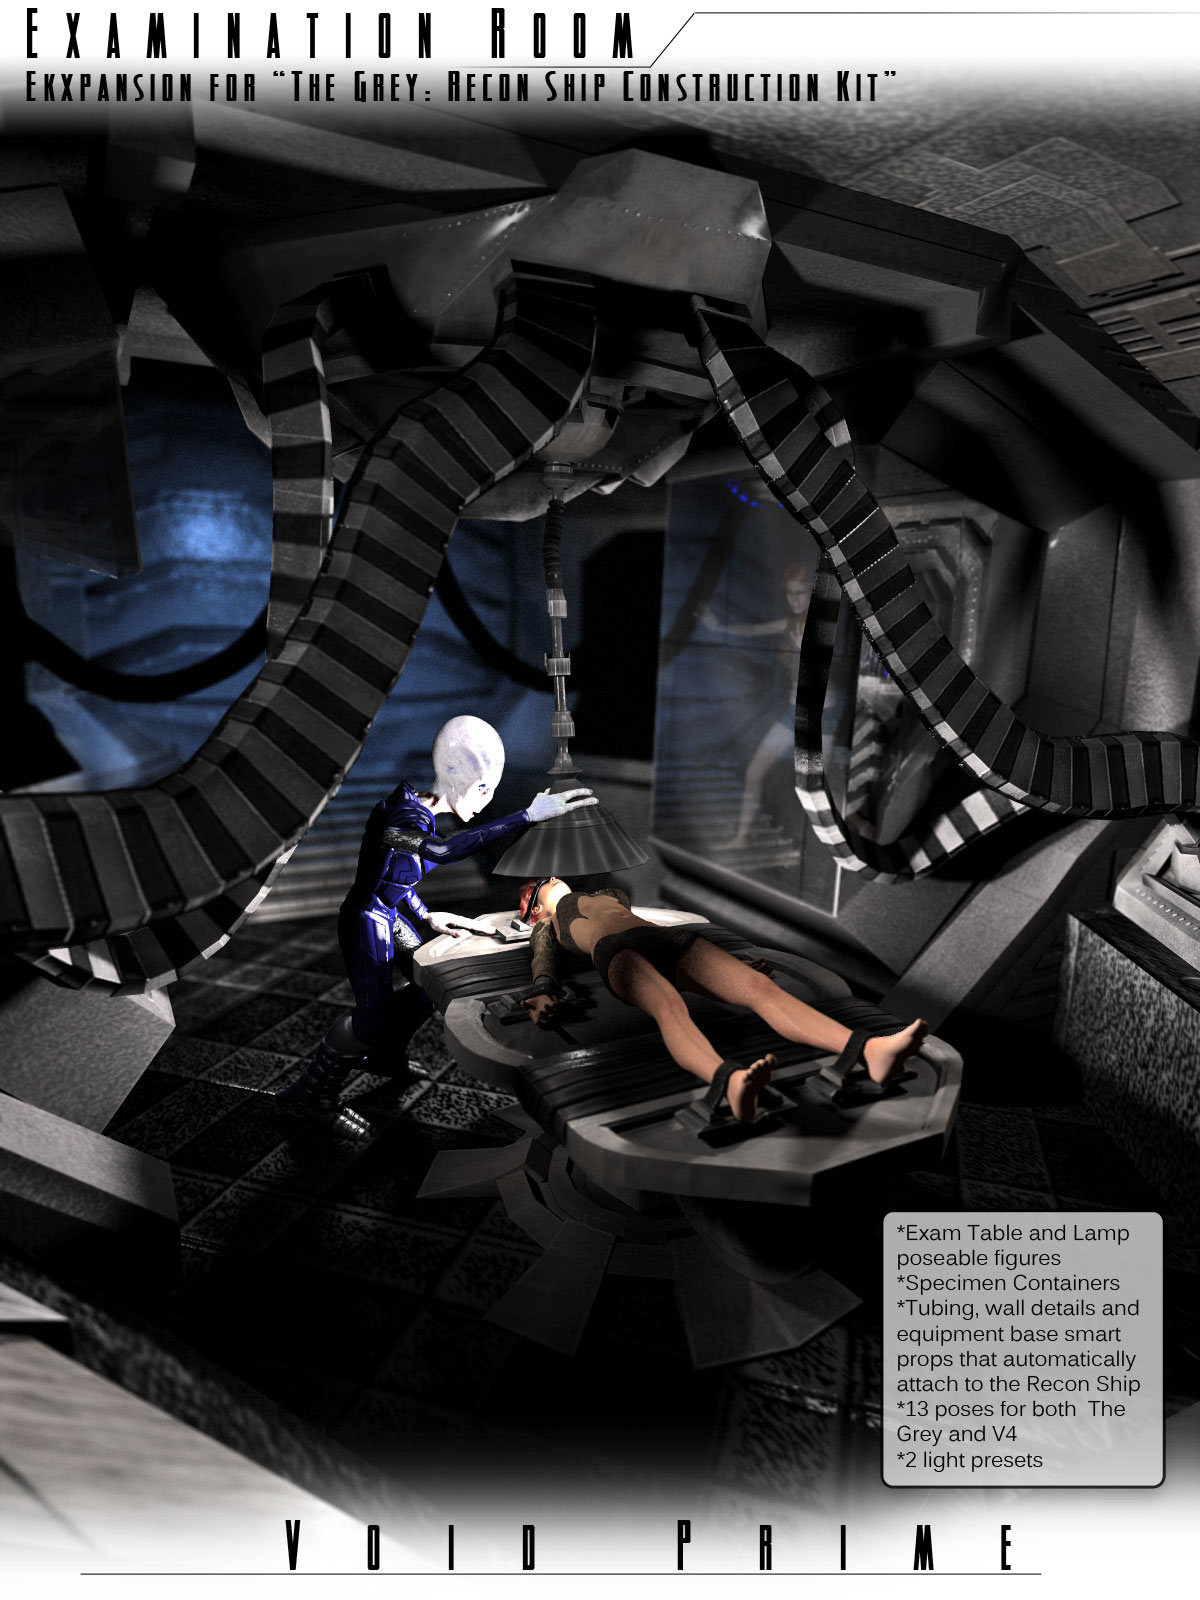 Void Prime: Grey Alien Recon Ship Construction Kit - Exam Room by sixus1